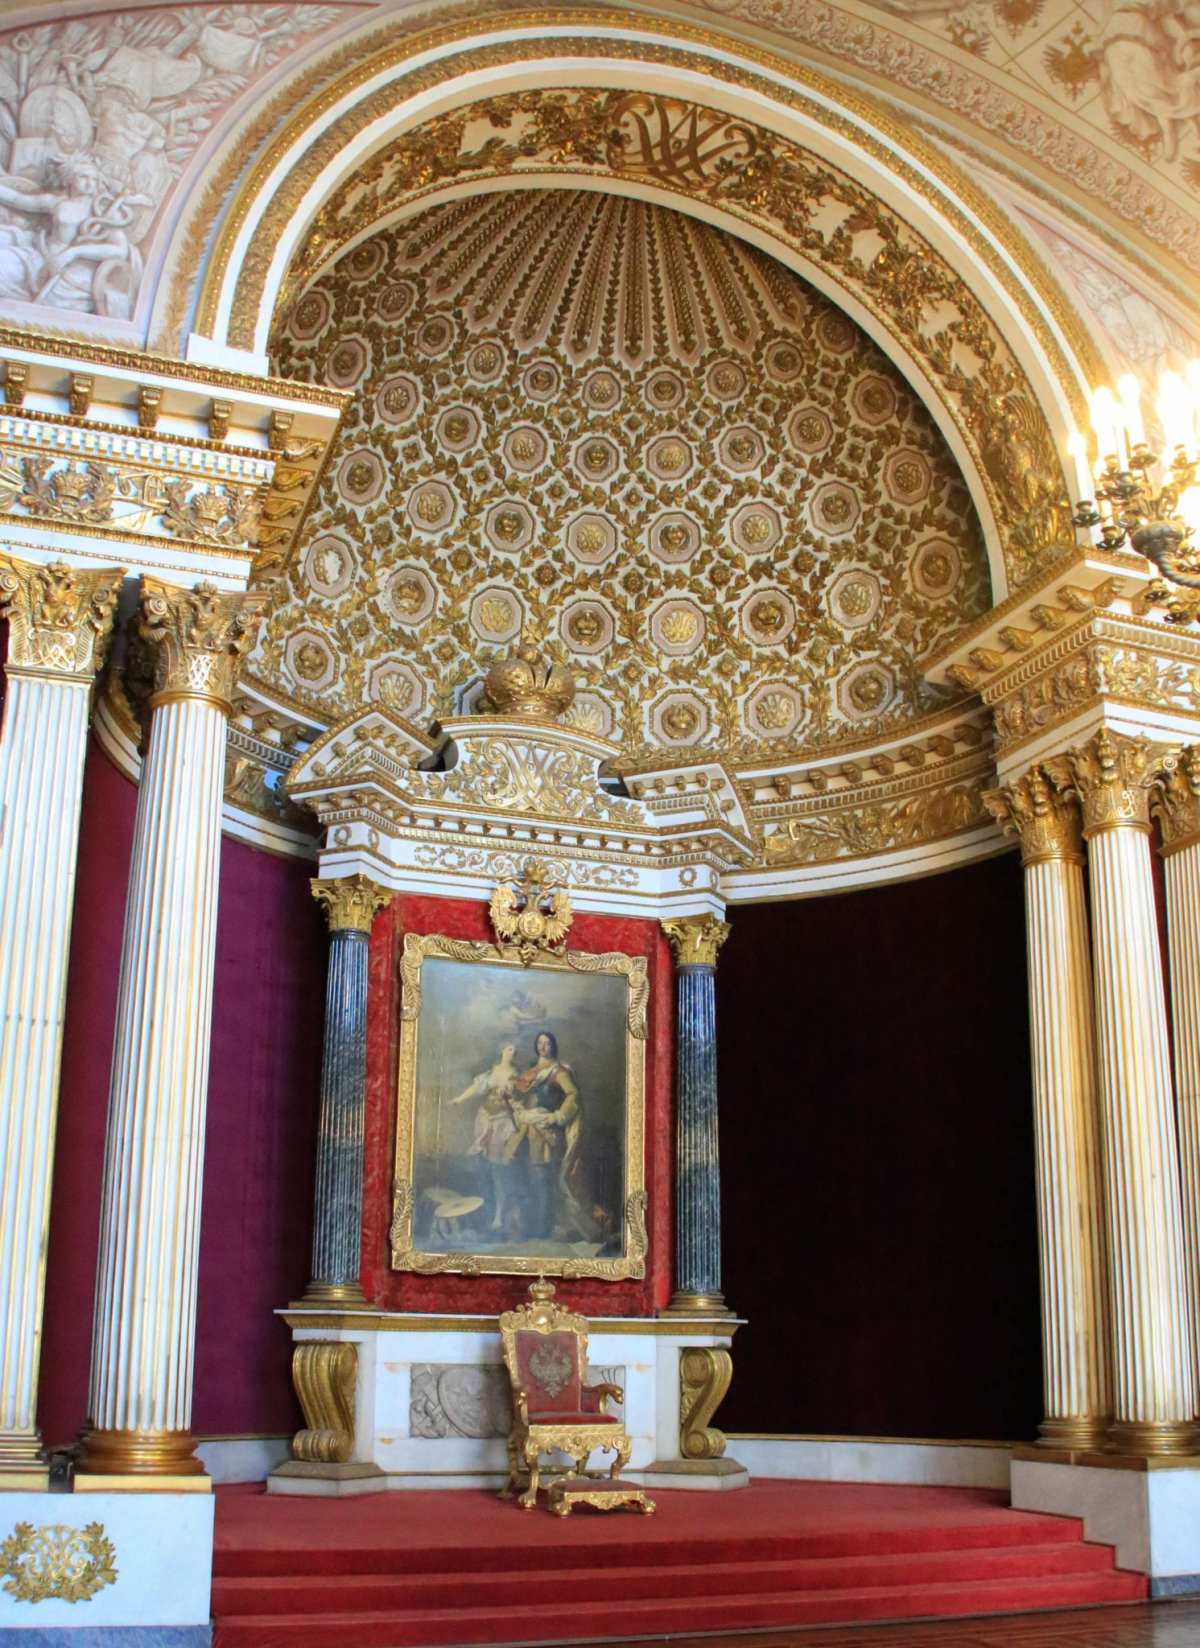 The imperial throne of Russia's tsars, under the portrait of Peter the Great, founder of St. Petersburg